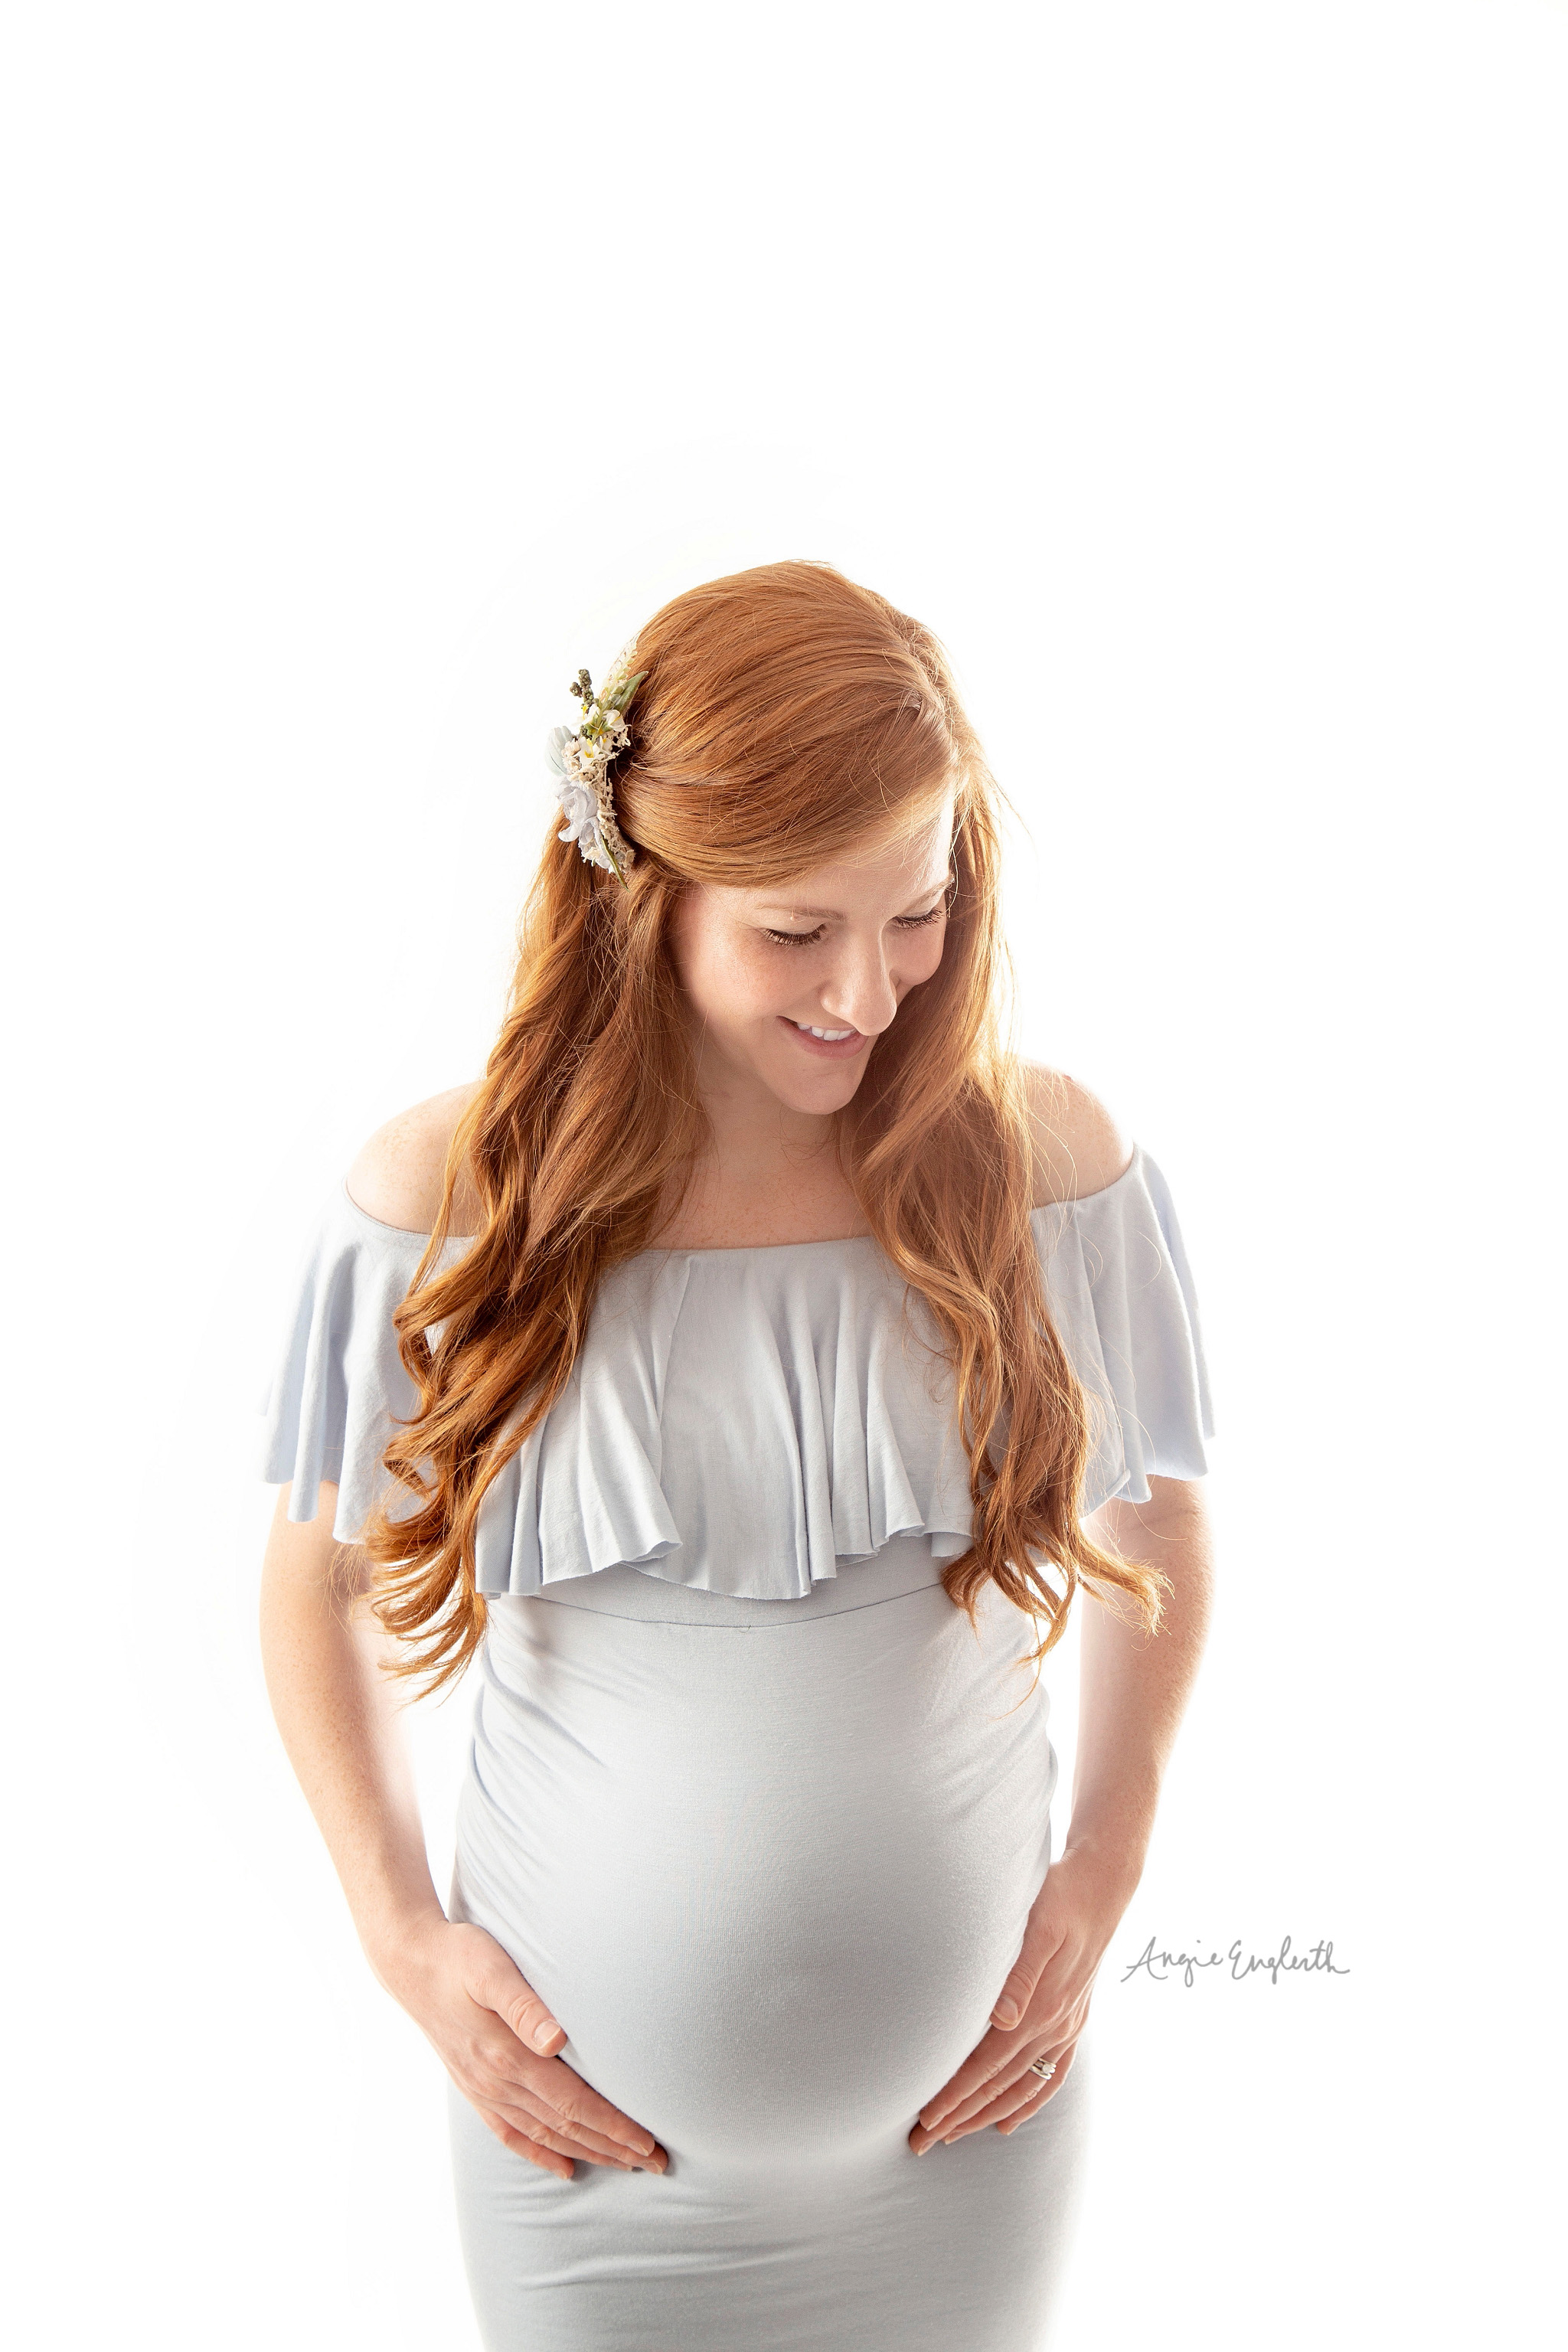 lancaster_maternity_photographer_angie_englerth_central_pa_b062.jpg